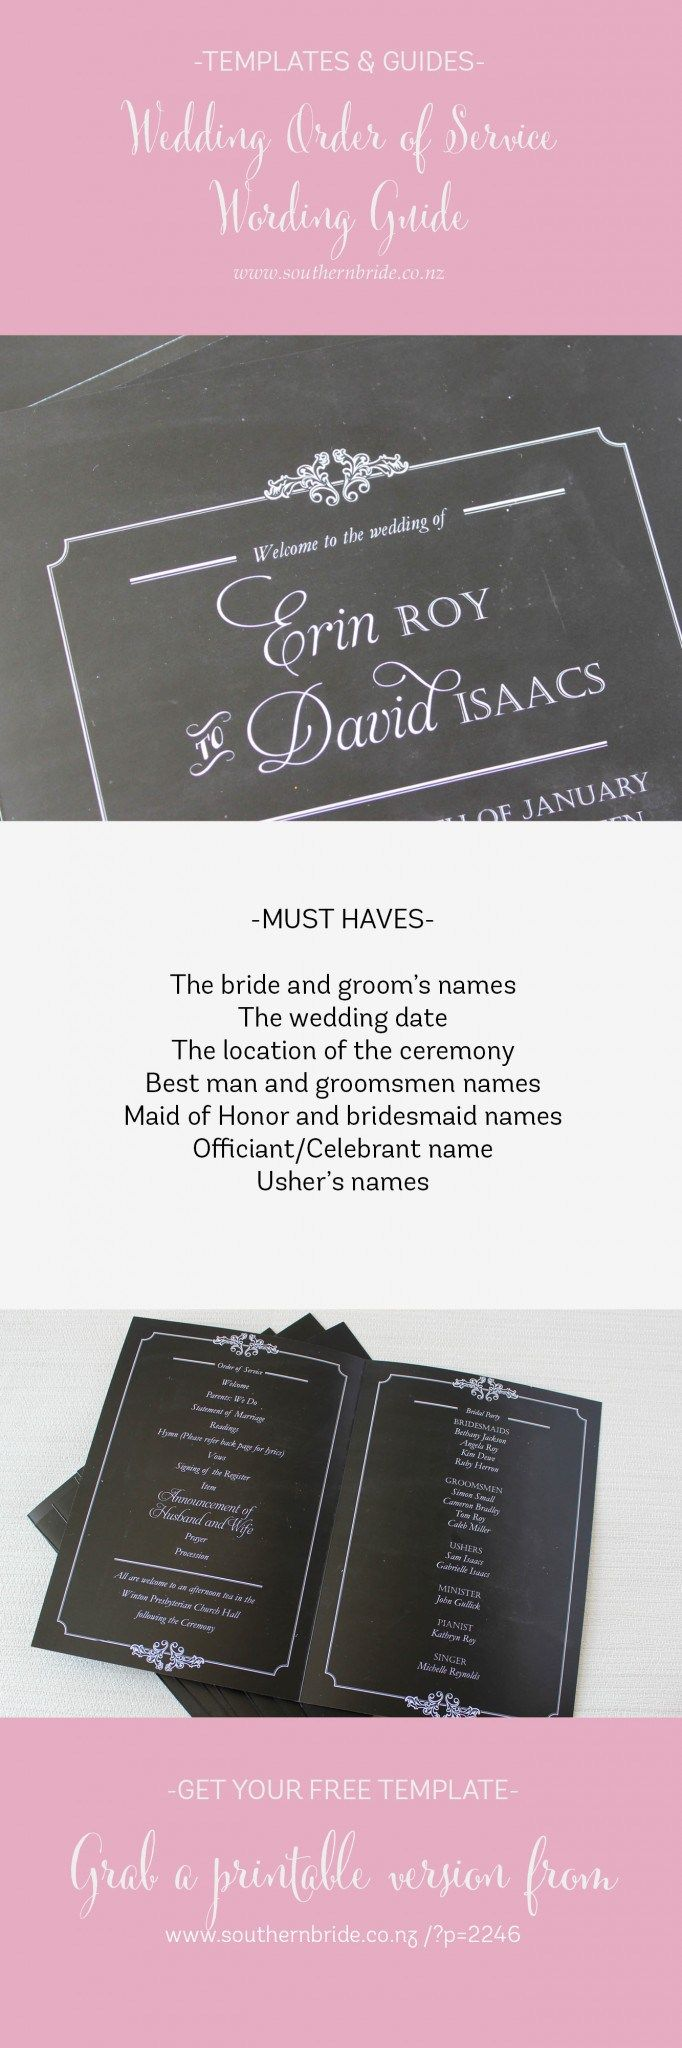 best wedding quotes for invitations%0A Wedding Order of Service Wording Template  What to include  u     examples